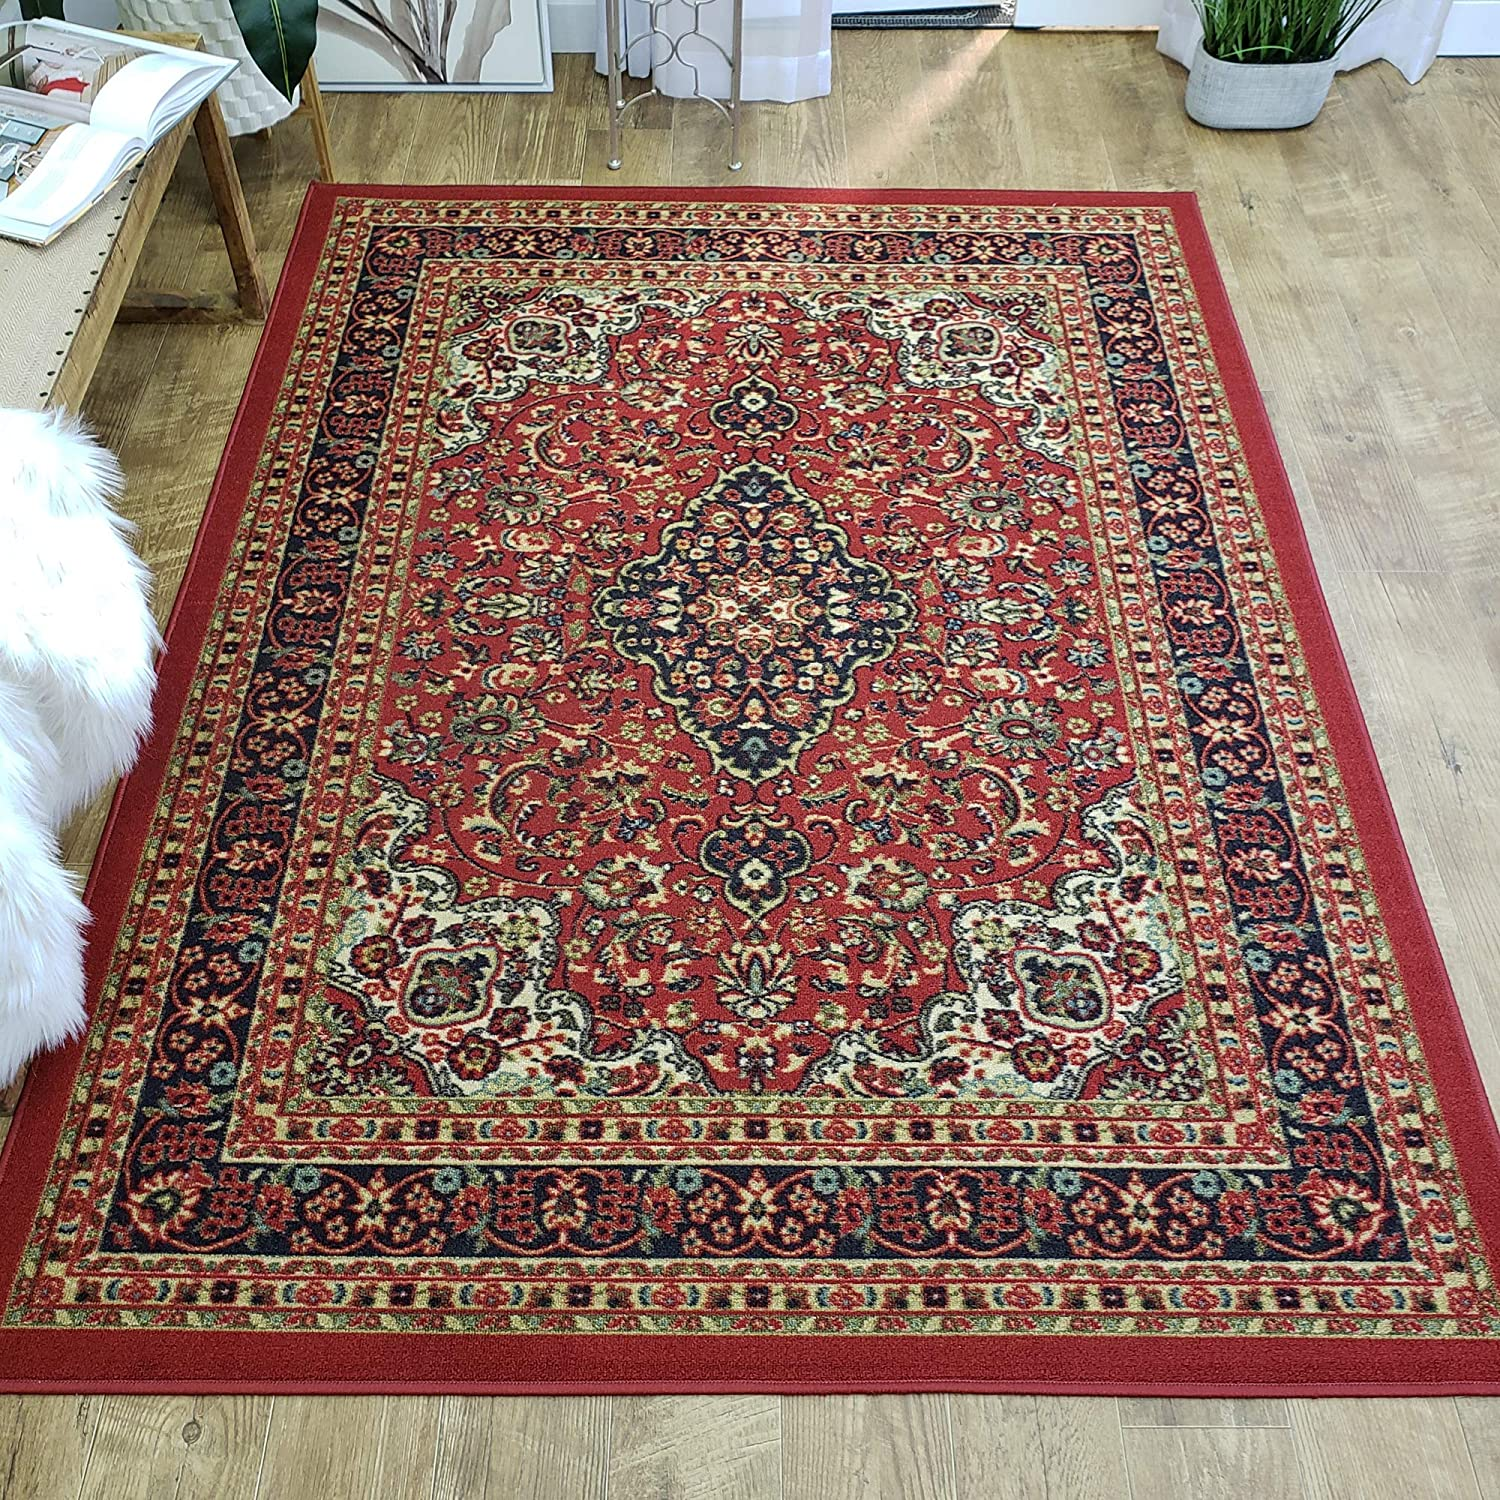 Area Rug 5x7 Red Medallion Kitchen Rugs and mats | Rubber Backed Non Skid Living Room Bathroom Nursery Home Decor Under Door Entryway Floor Non Slip Washable | Made in Europe